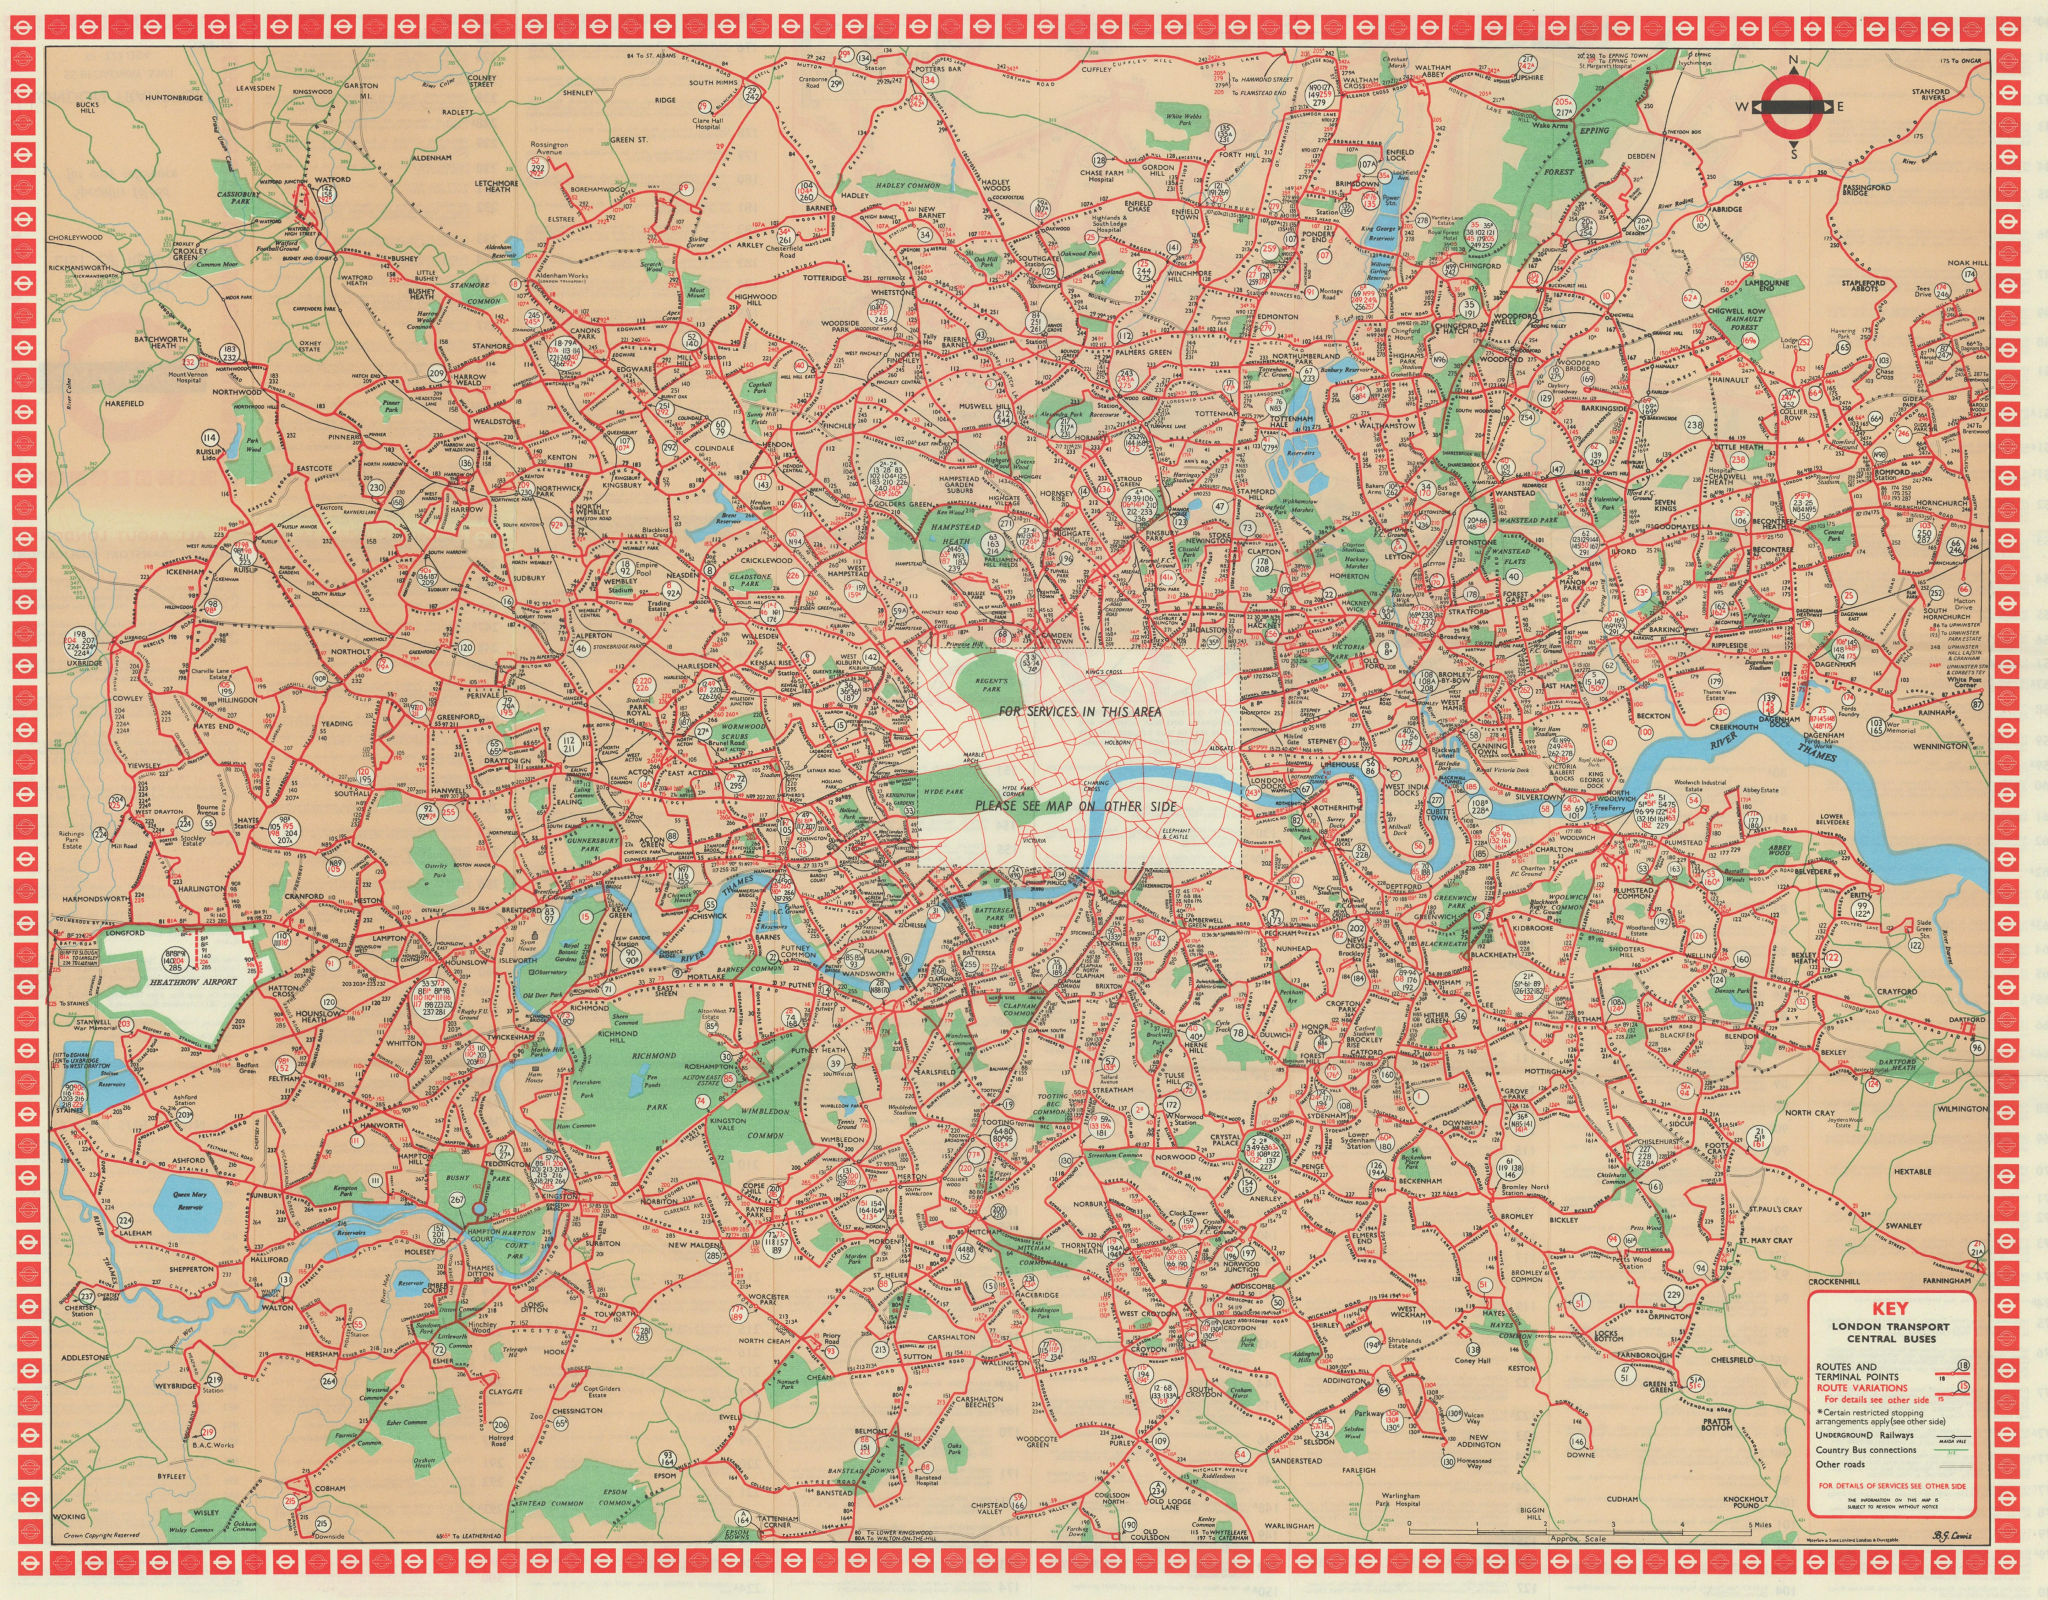 London Transport Central Buses map and list of routes. LEWIS 1968 old